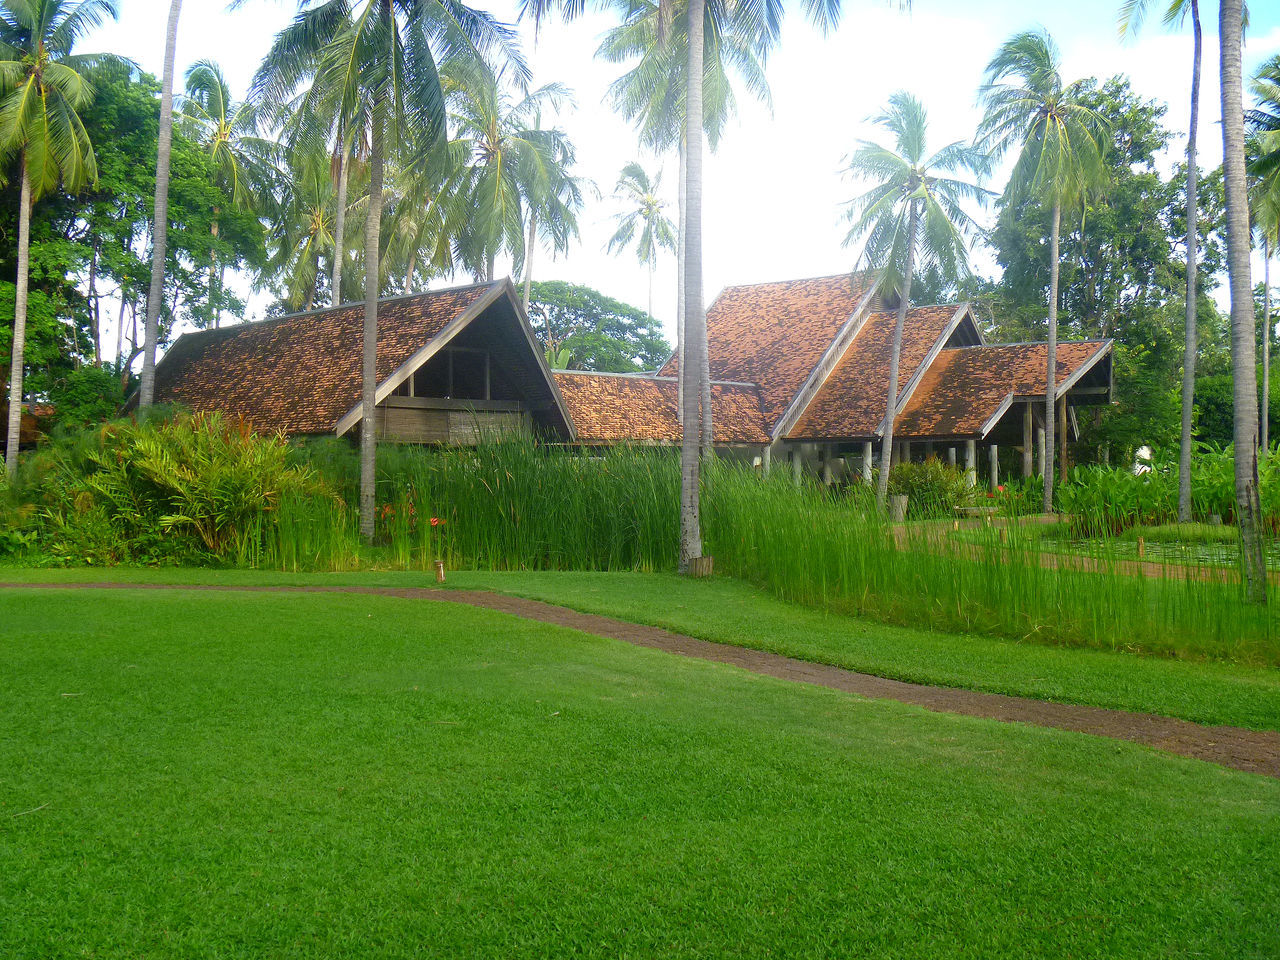 tree, palm tree, grass, green color, growth, built structure, no people, architecture, day, nature, beauty in nature, building exterior, tranquility, outdoors, scenics, sky